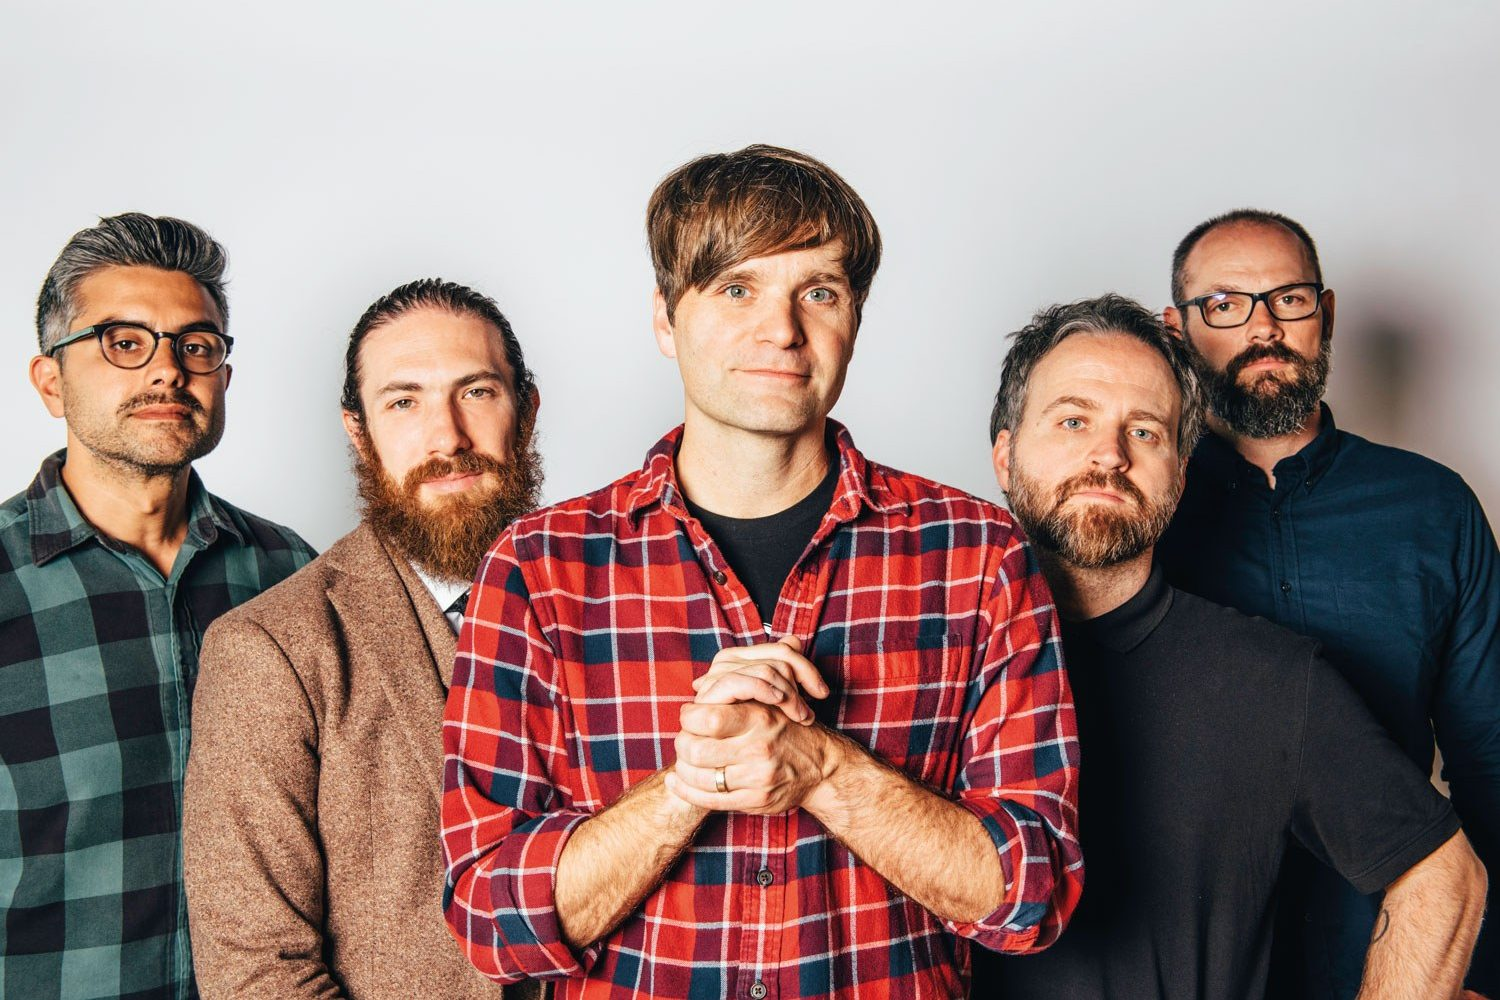 The new issue of Upset is out now, featuring Death Cab For Cutie, As It Is, Bury Tomorrow and more!